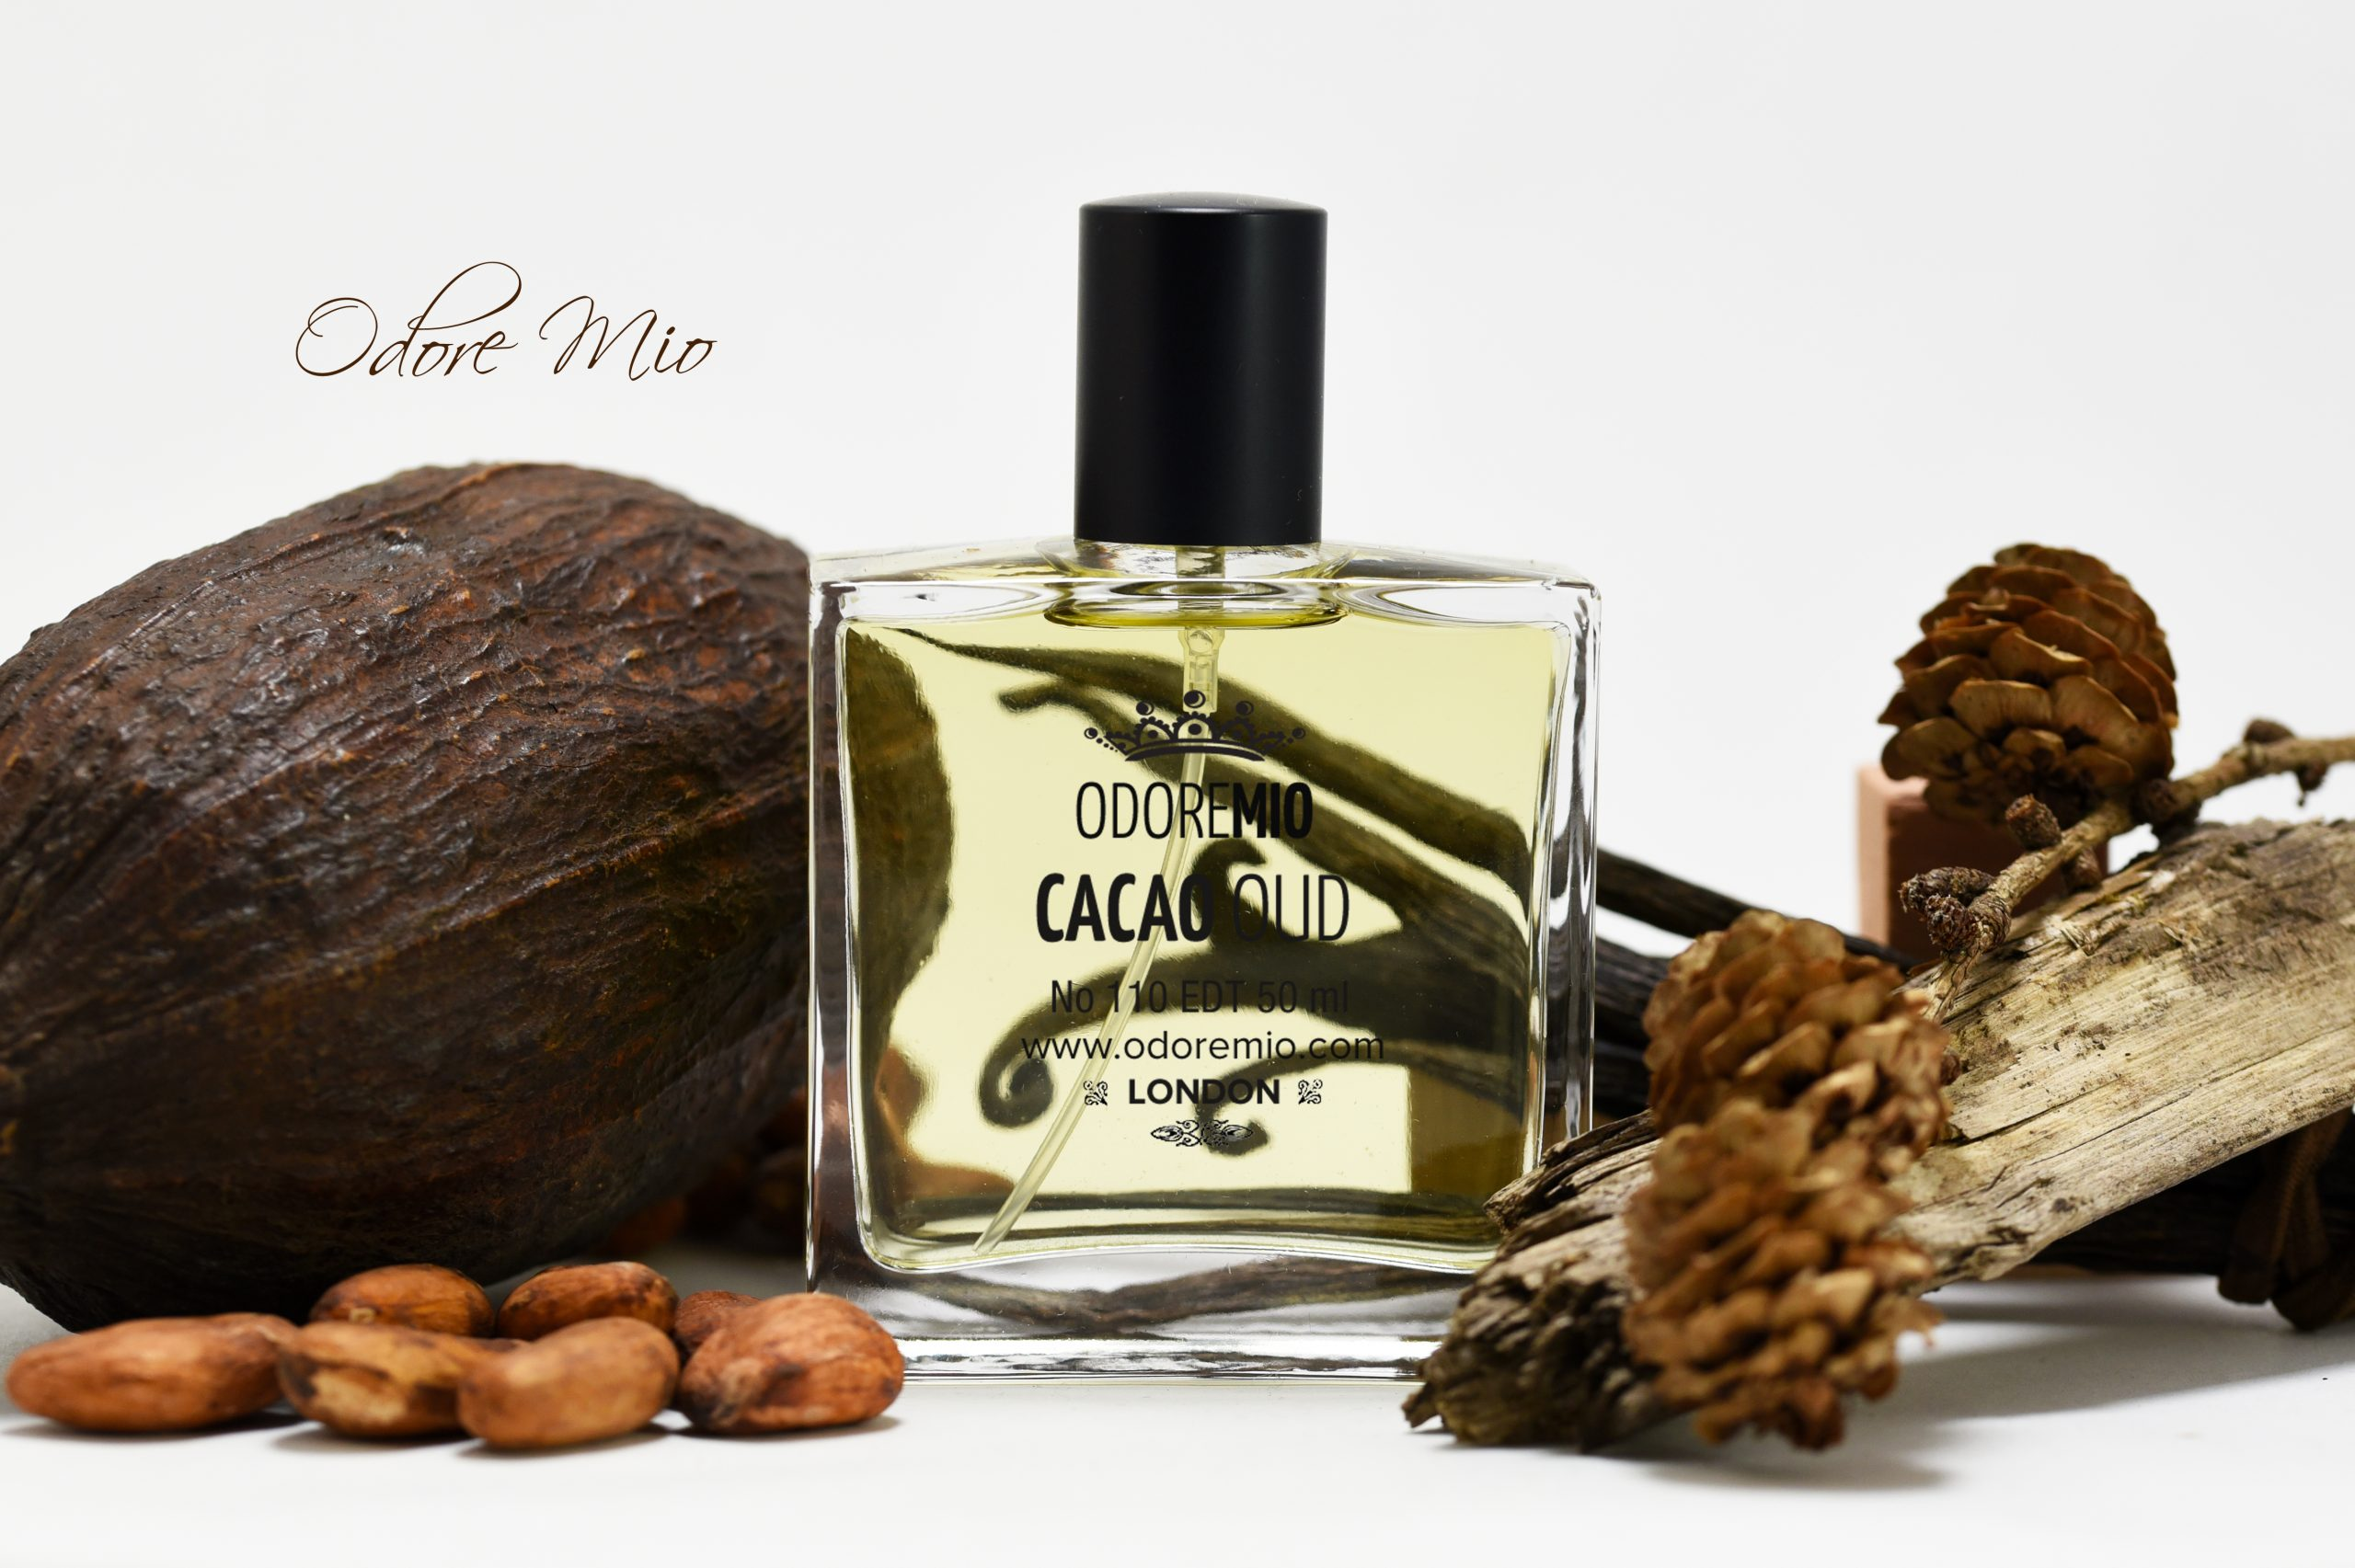 Odore Mio Cacao Oud Perfume